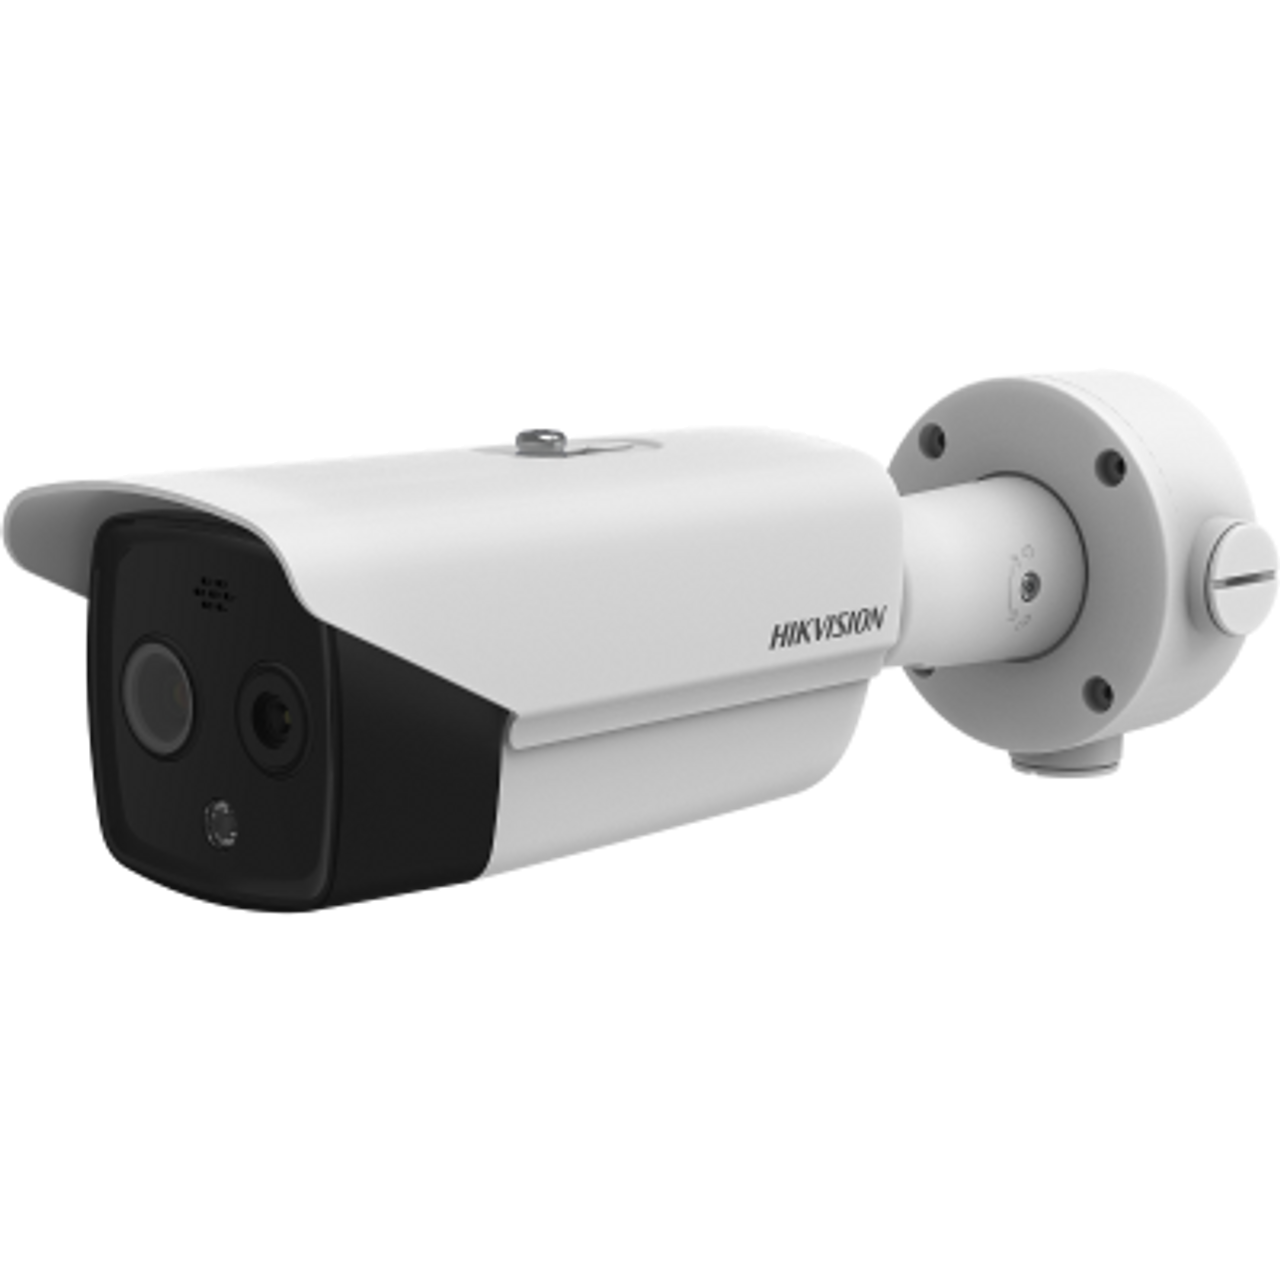 Hikvision DS-2TD2617B-6/PA 6.2mm fixed lens thermographic bullet body temperature measurement camera